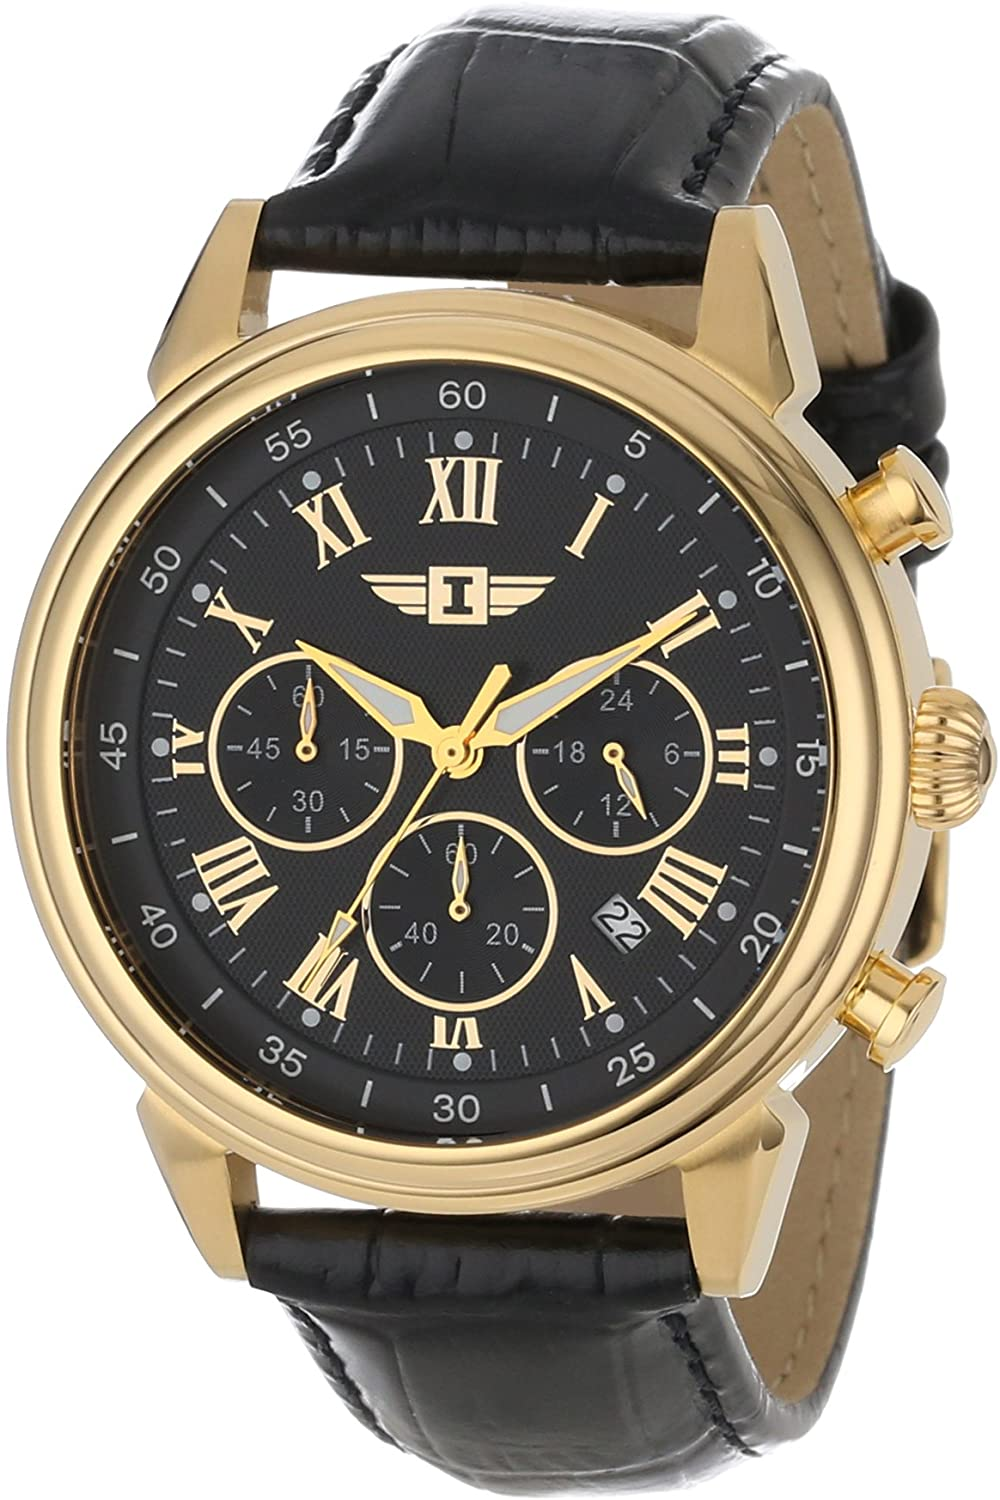 Invicta Men's 90242-003 Invicta I 18k Gold-Plated Stainless Steel Watch with Black Leather Band